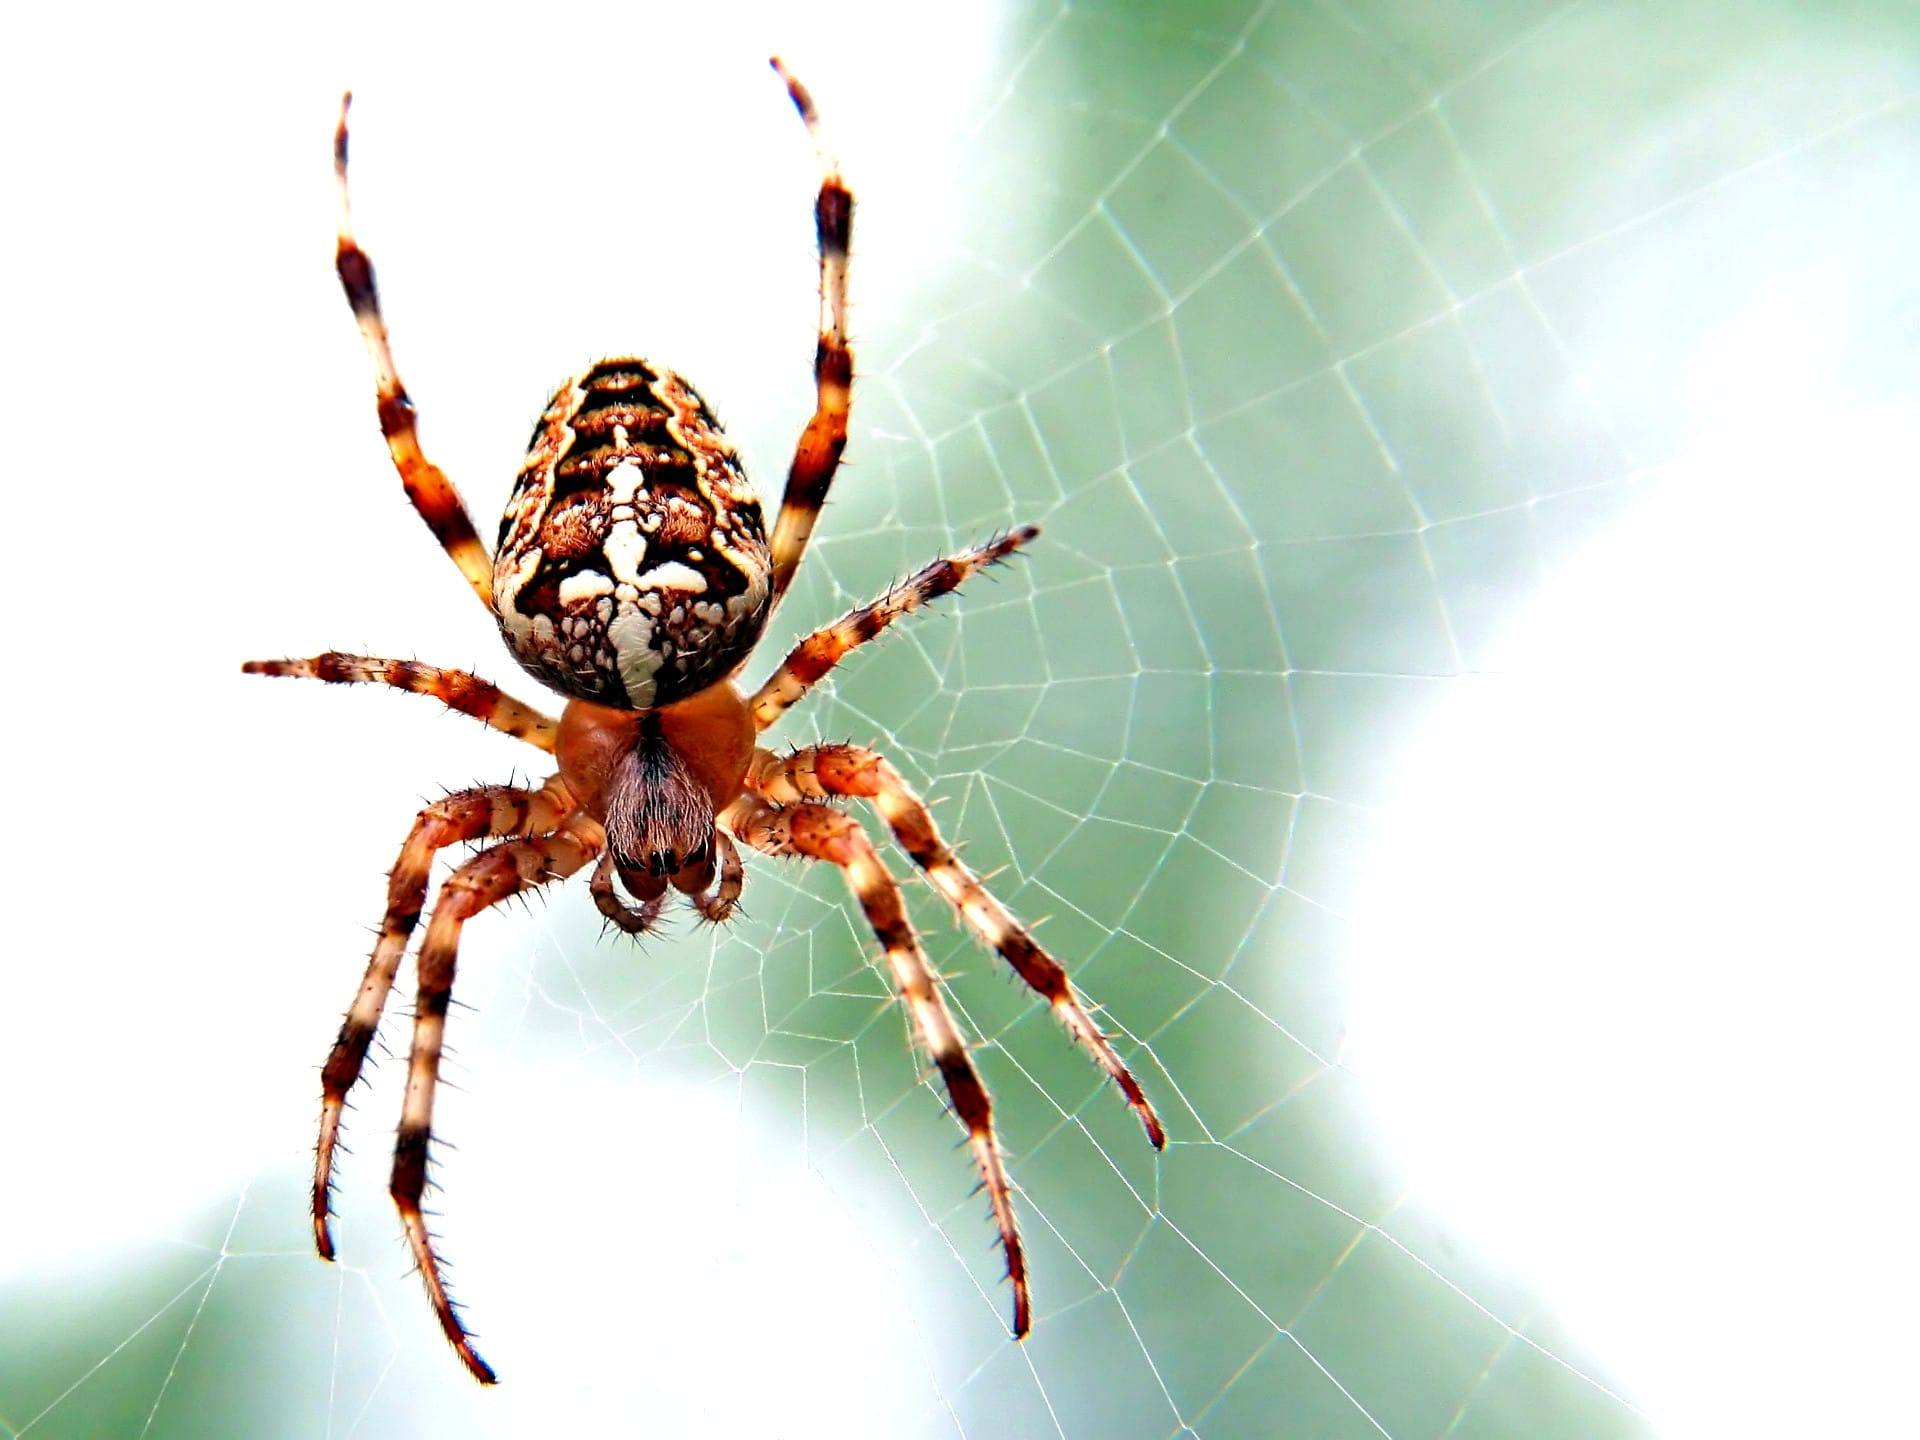 October Pest of the Month: Spiders